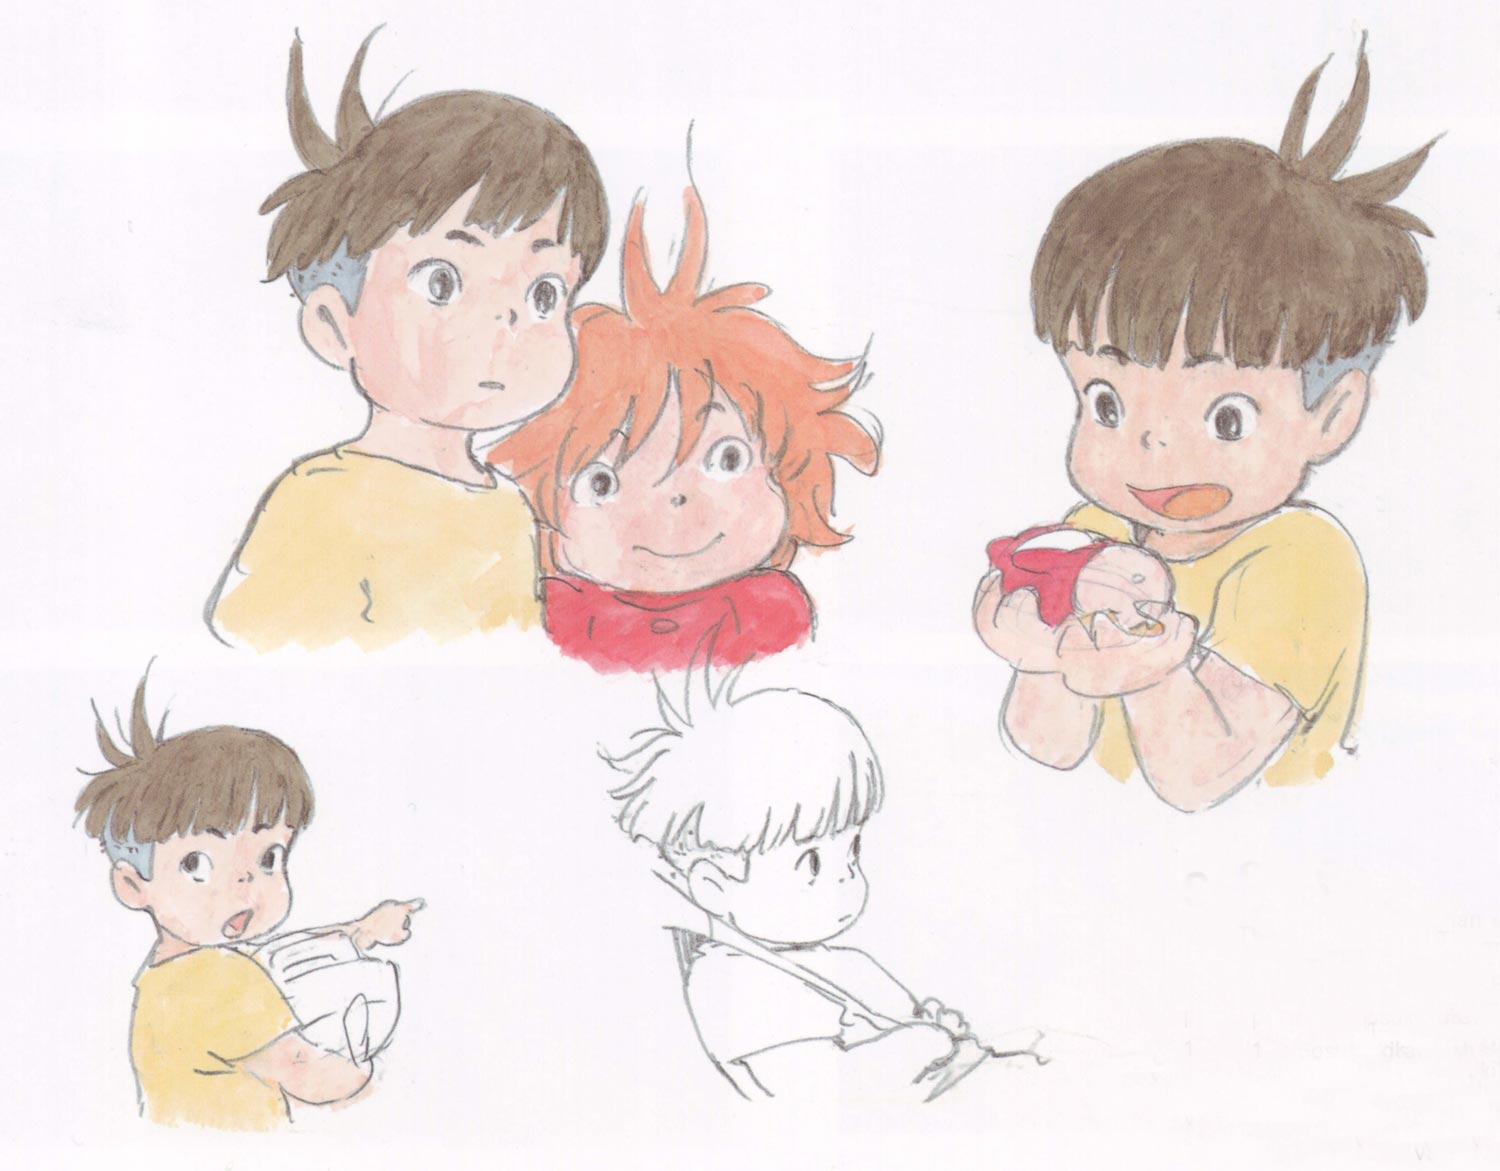 ponyo_on_the_cliff_by_the_sea_artwork_character__24.jpg